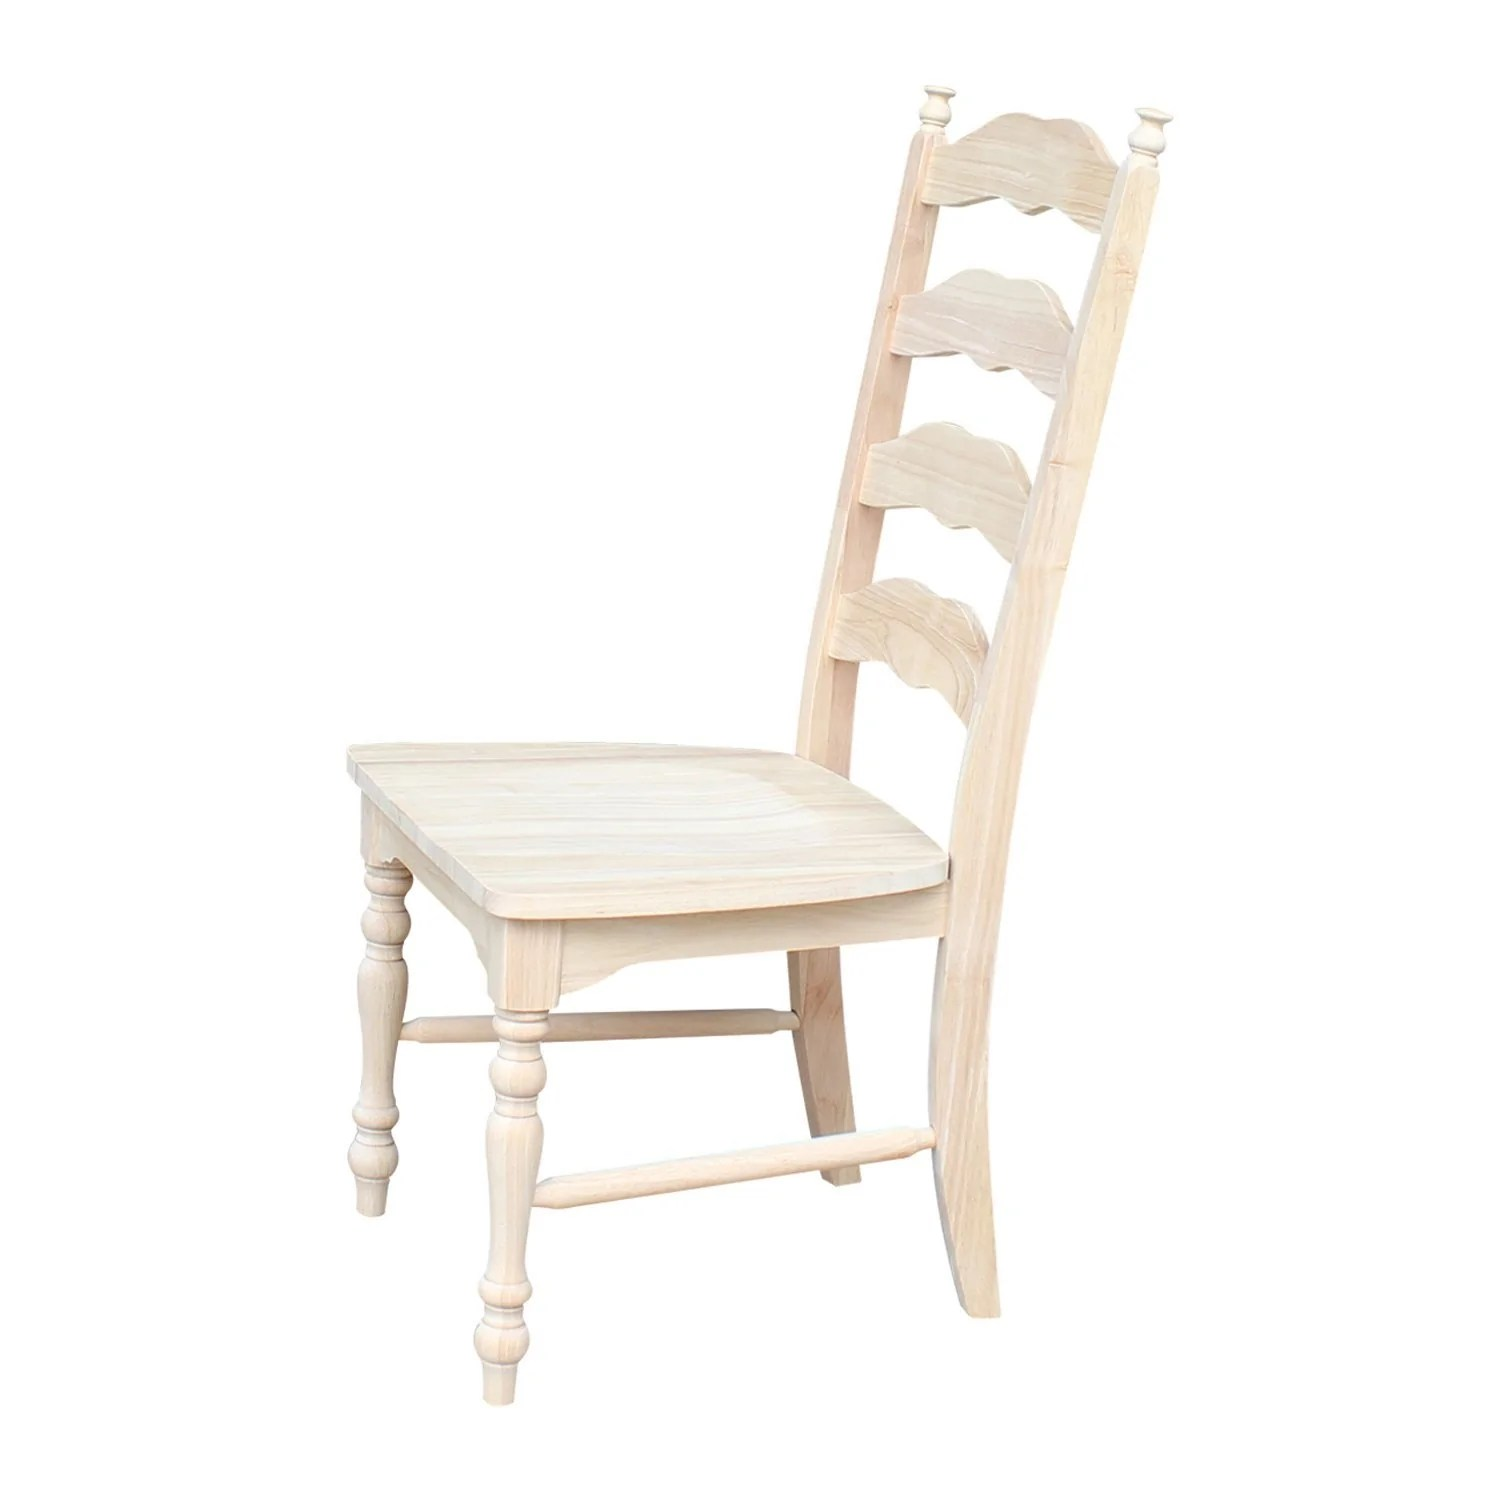 Maine Ladderback Chair with Upholstered Seat  Free